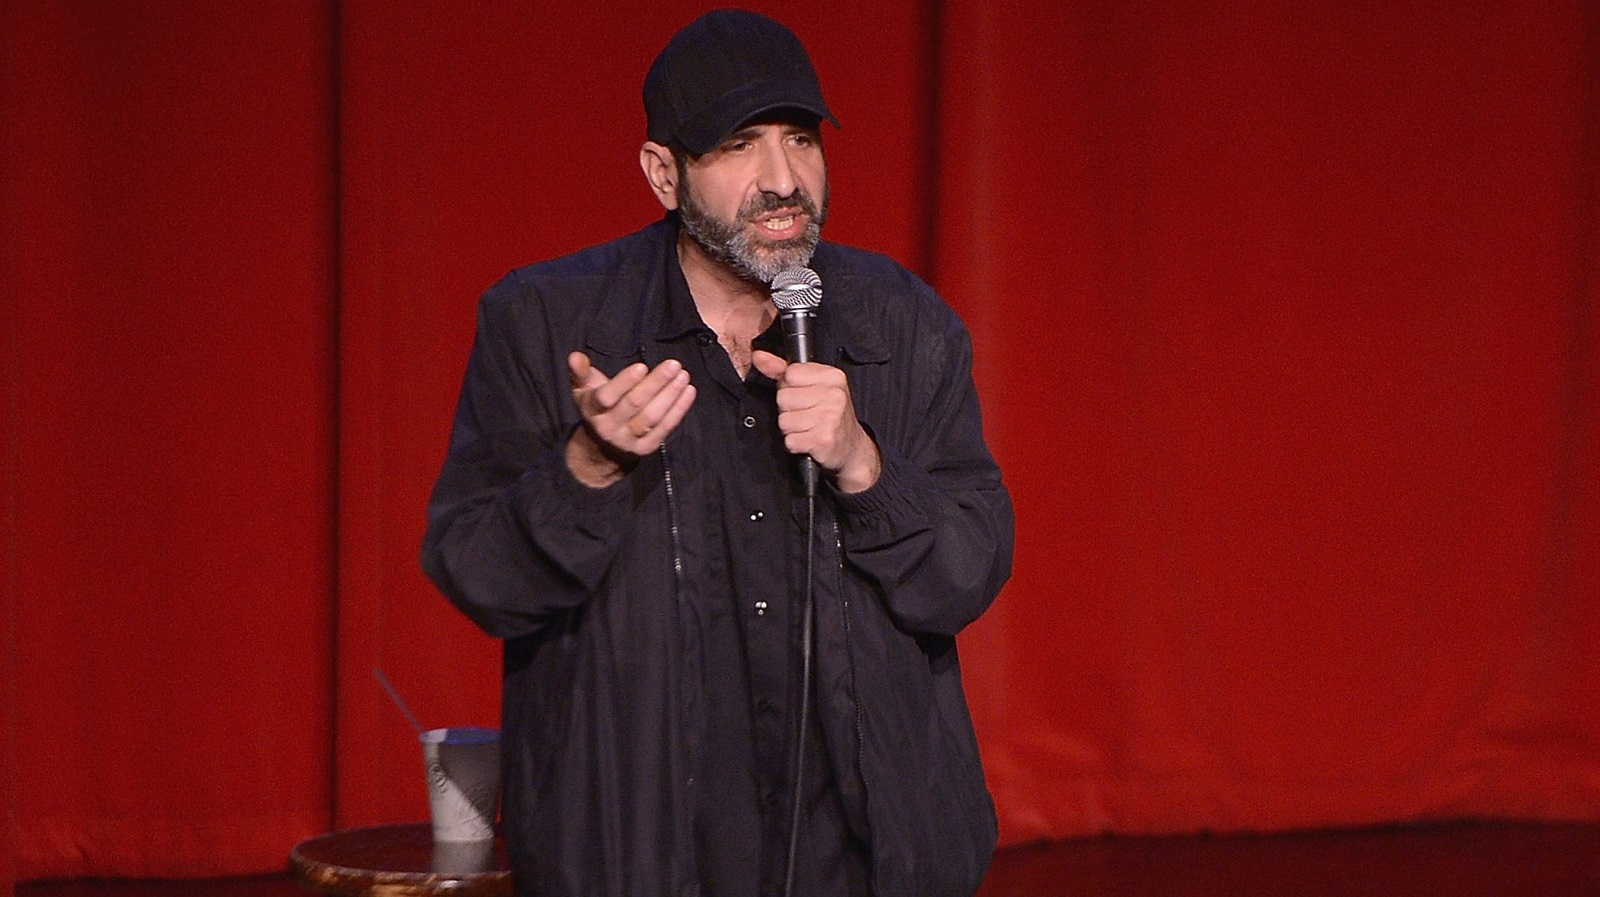 If you like humor that hinges on sex and porn, Dave Attell is the comedian for you, Mark Ciemcioch writes. (Getty Images)